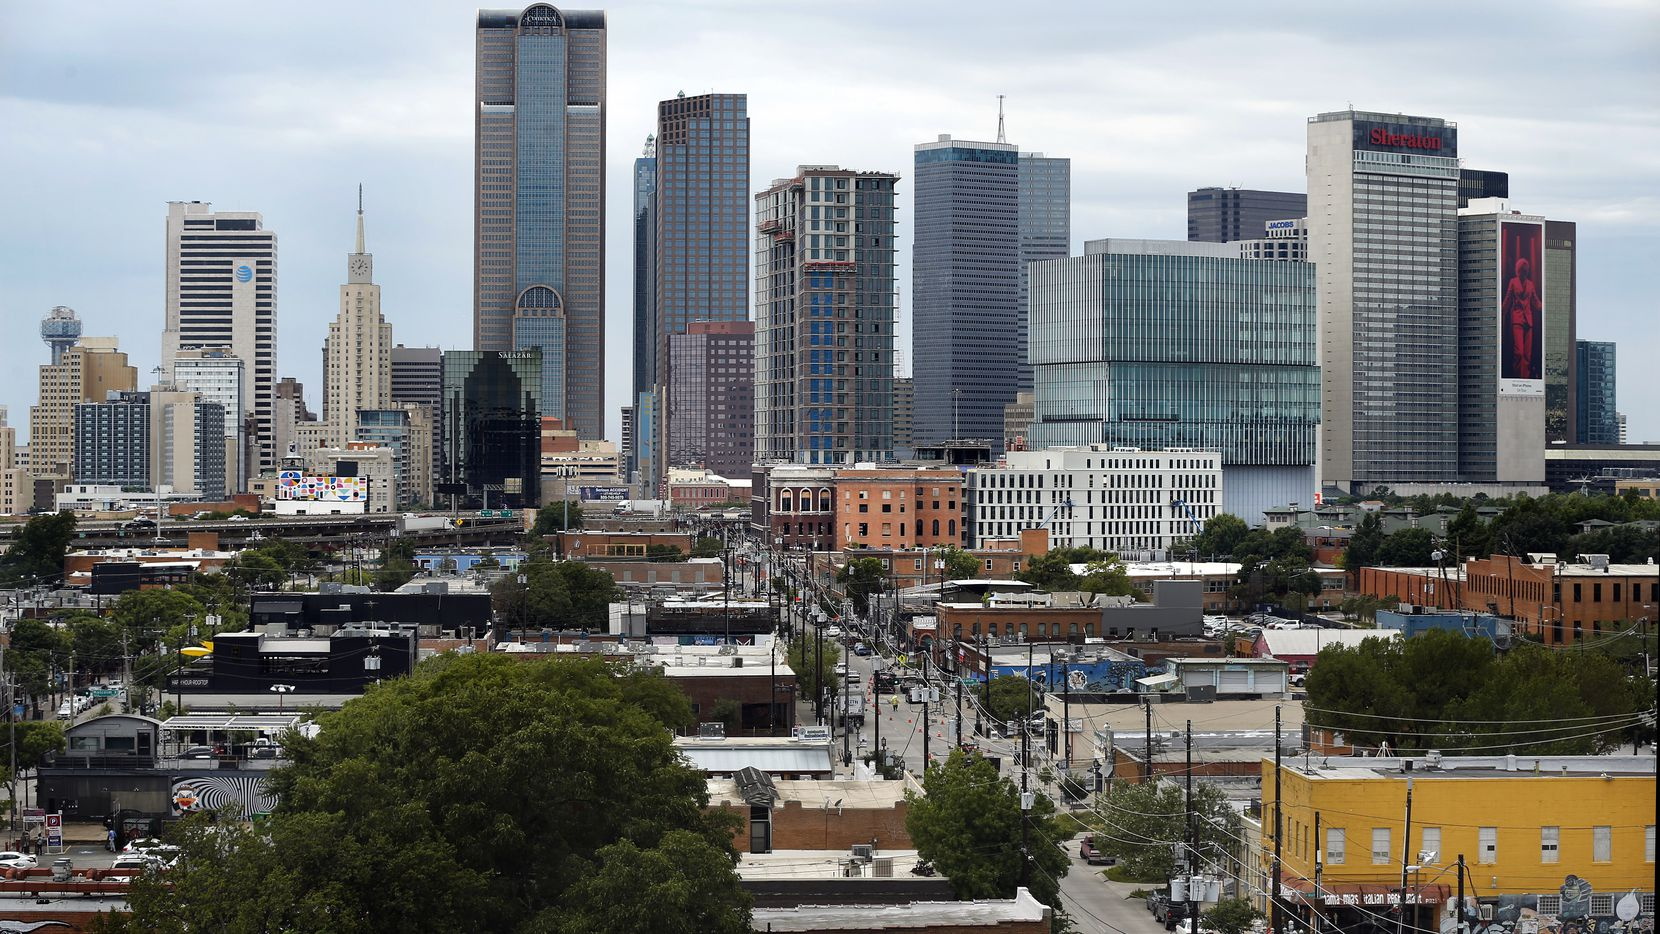 Deep Ellum's location on the eastern edge of downtown Dallas is appealing to new business.